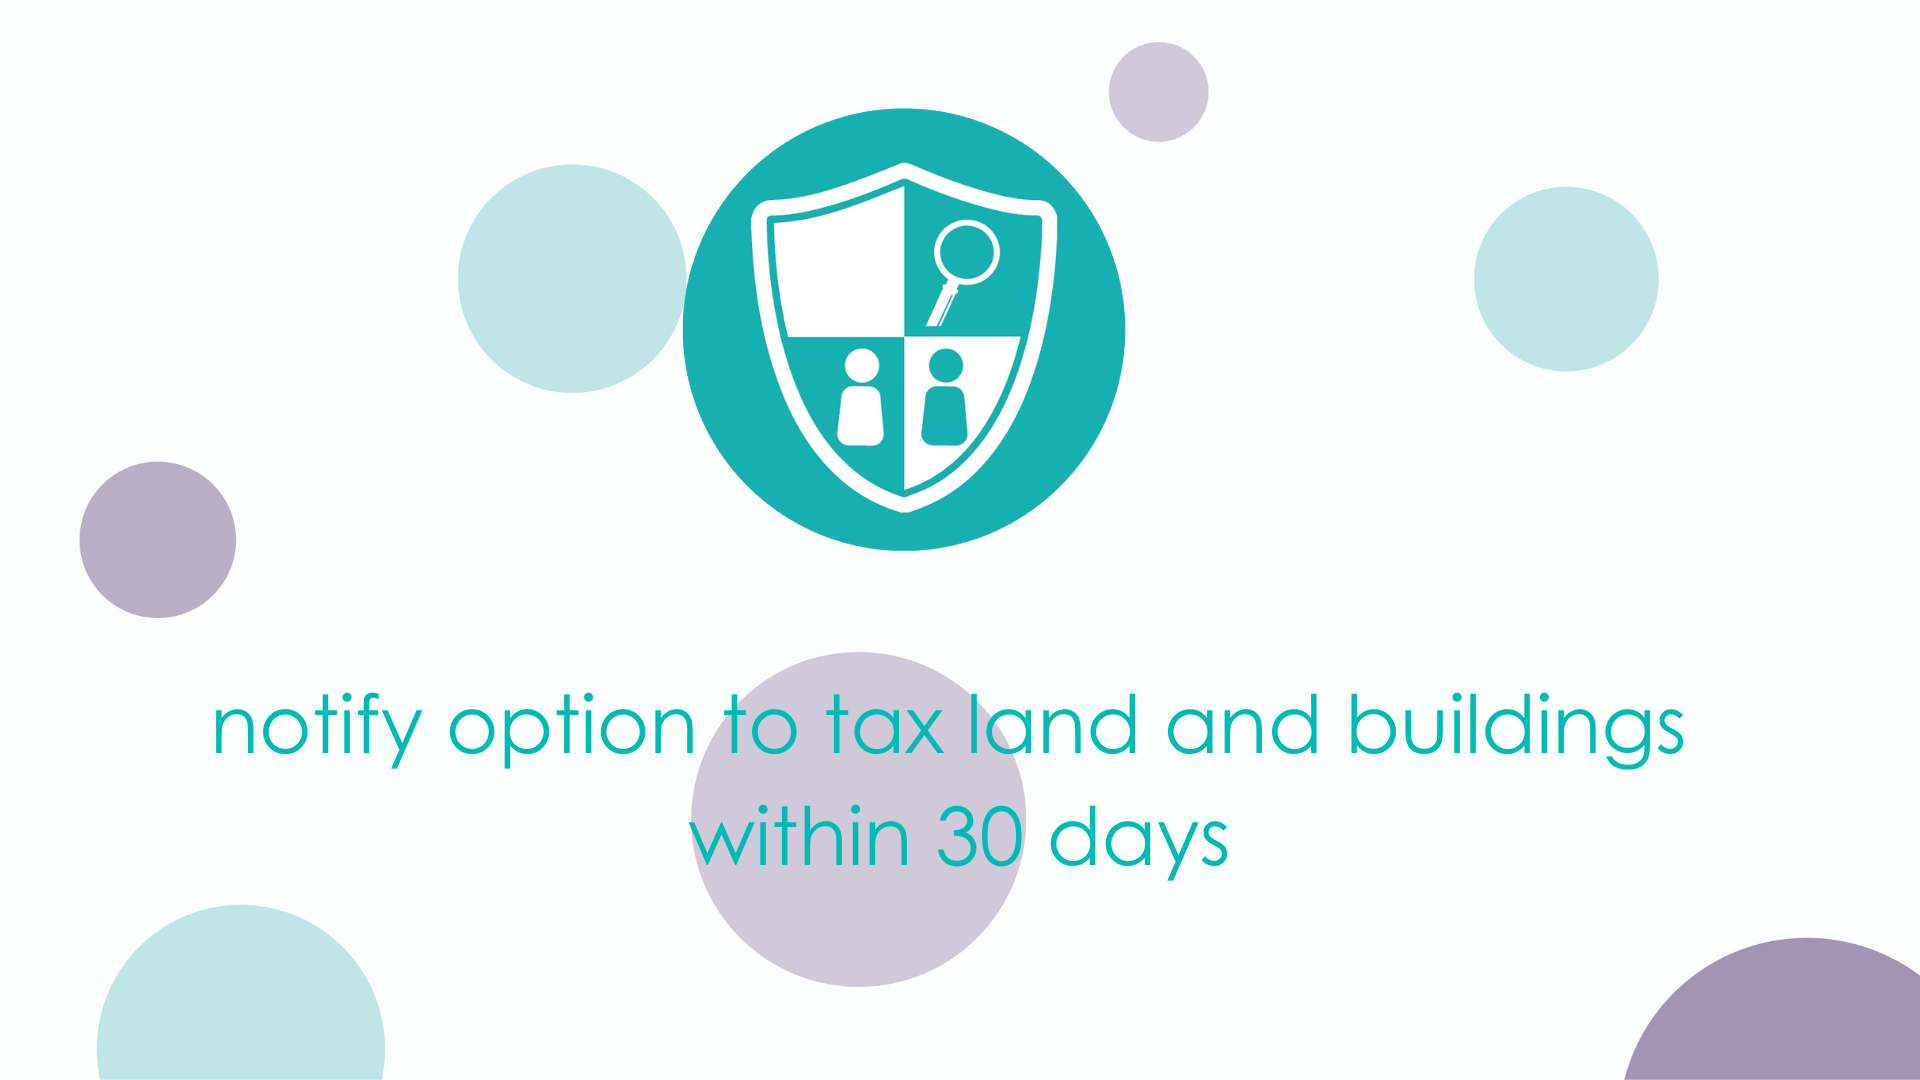 notify option to tax land and buildings within 30 days